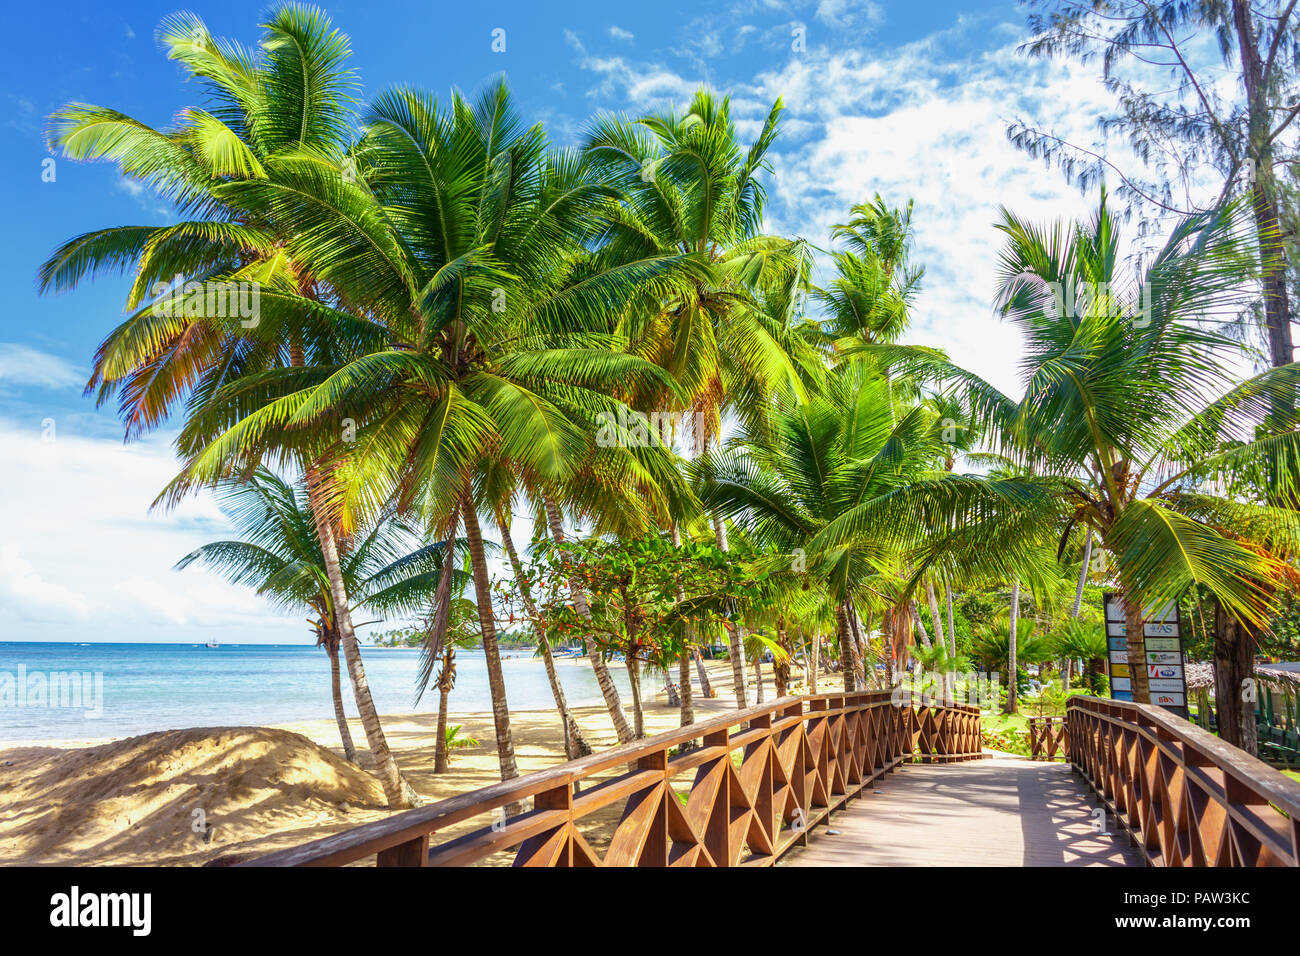 wooden bridge among the palm trees on the beach - Stock Image